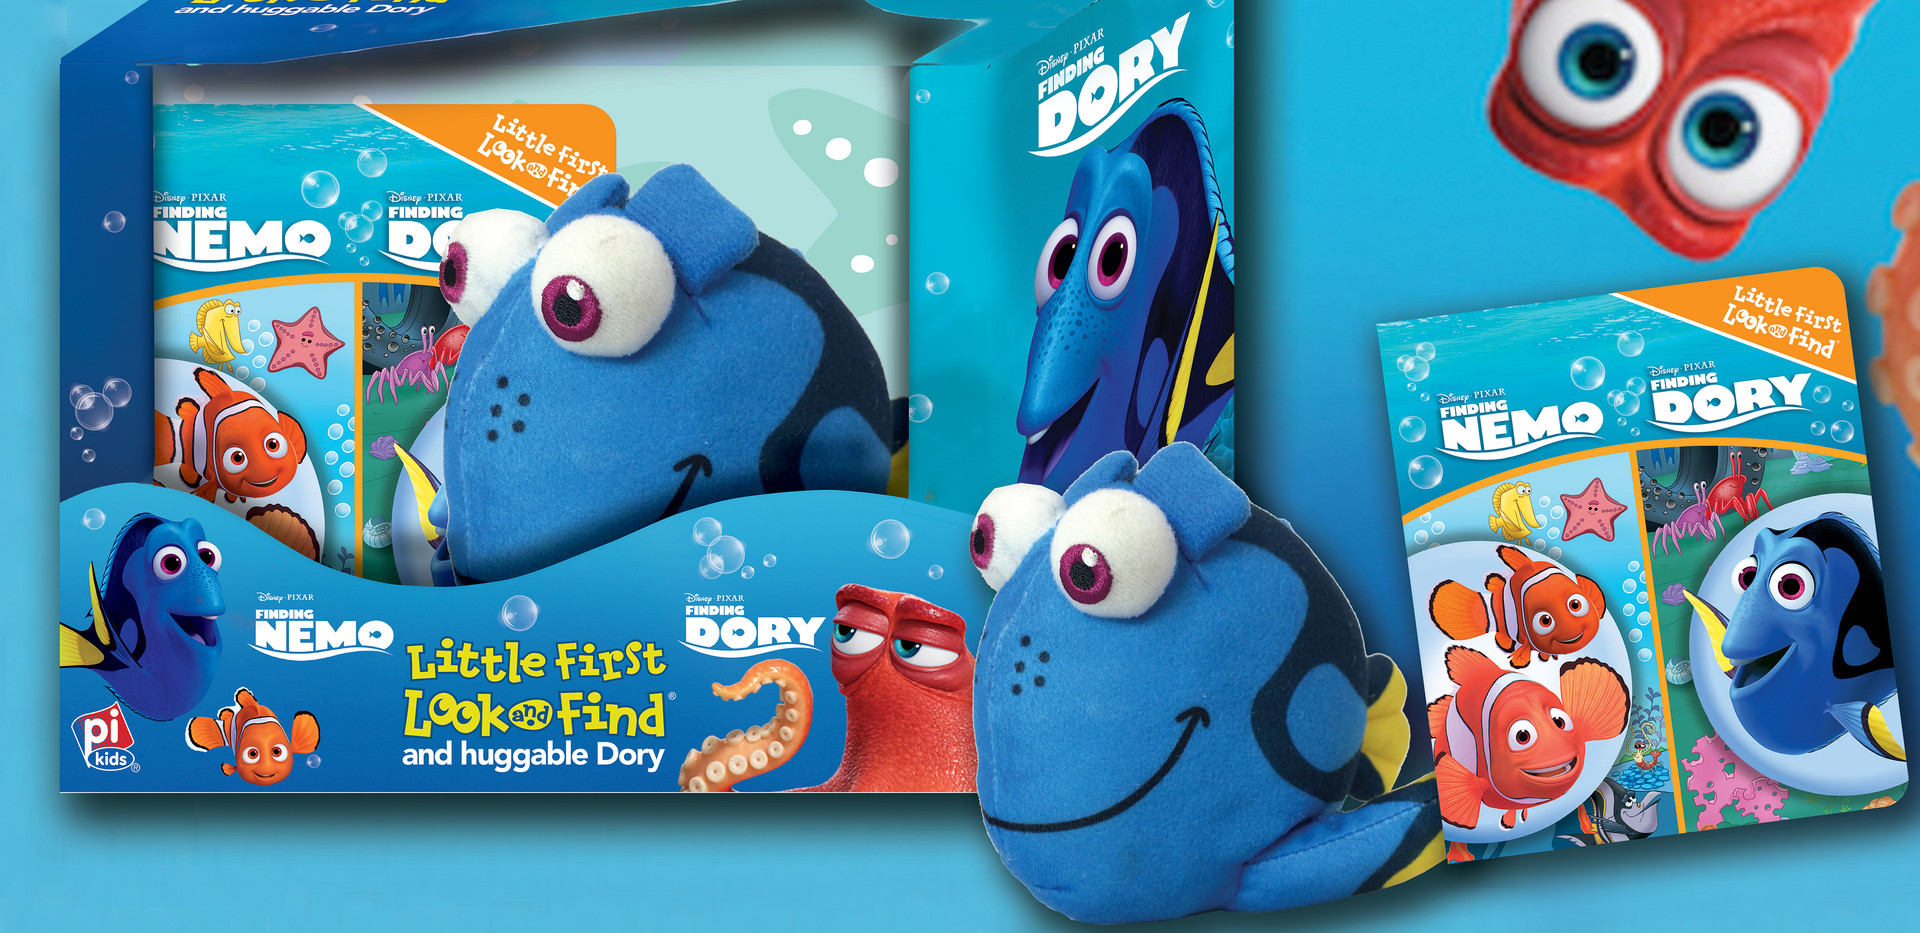 Finding Dory Packaging